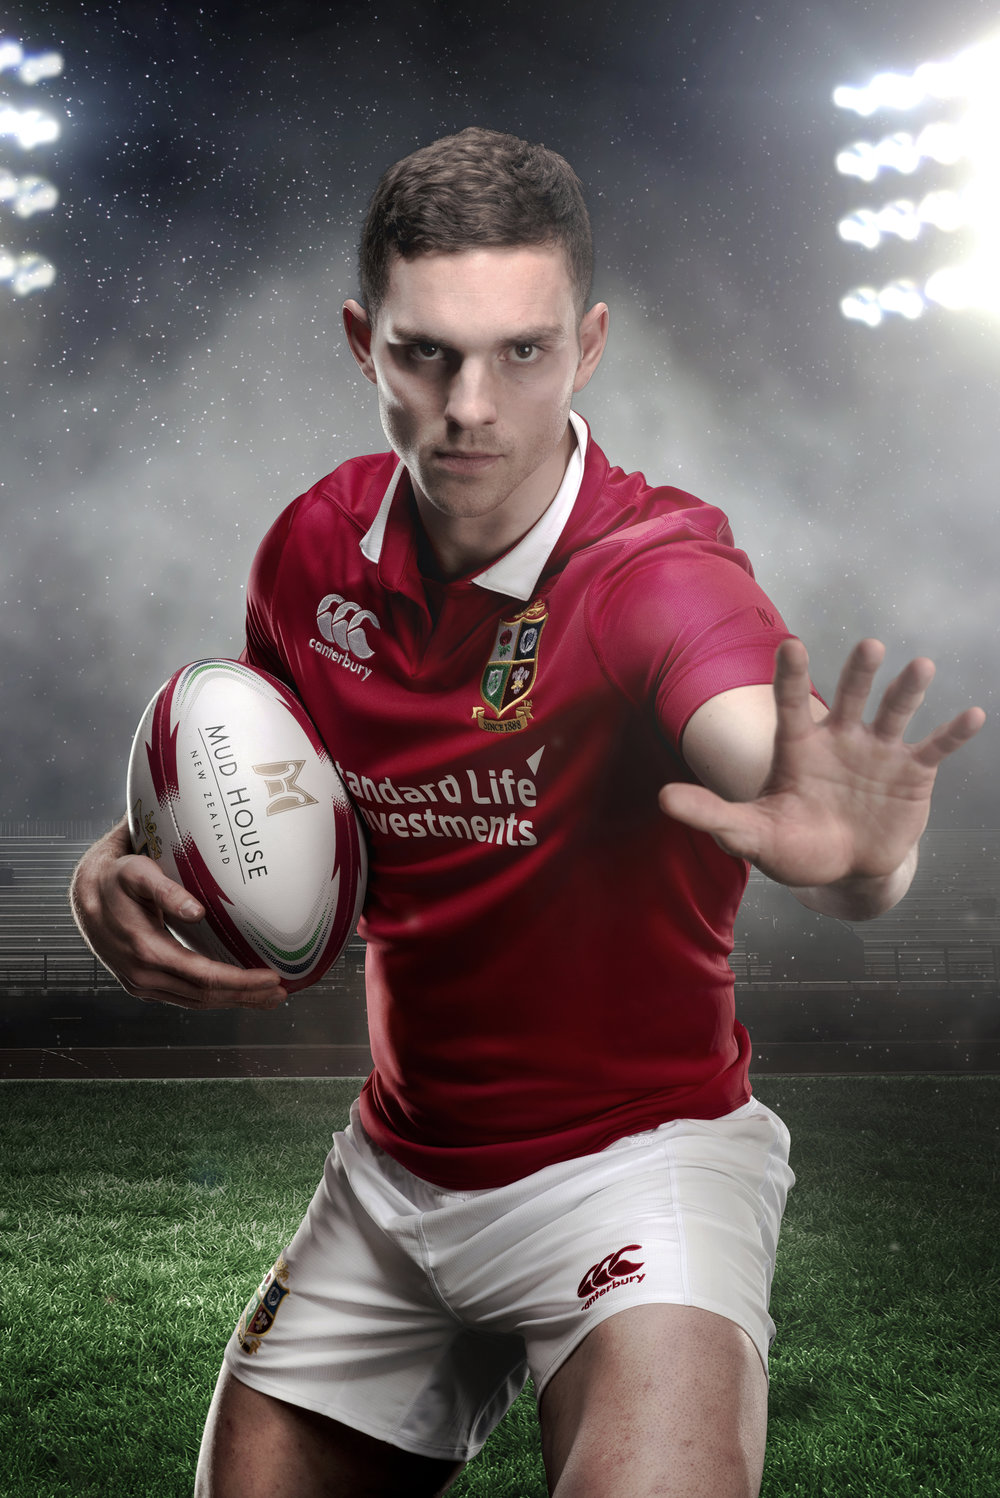 GEORGE NORTH RUGBY PLAYER PHOTO CREDIT PAUL COOPER